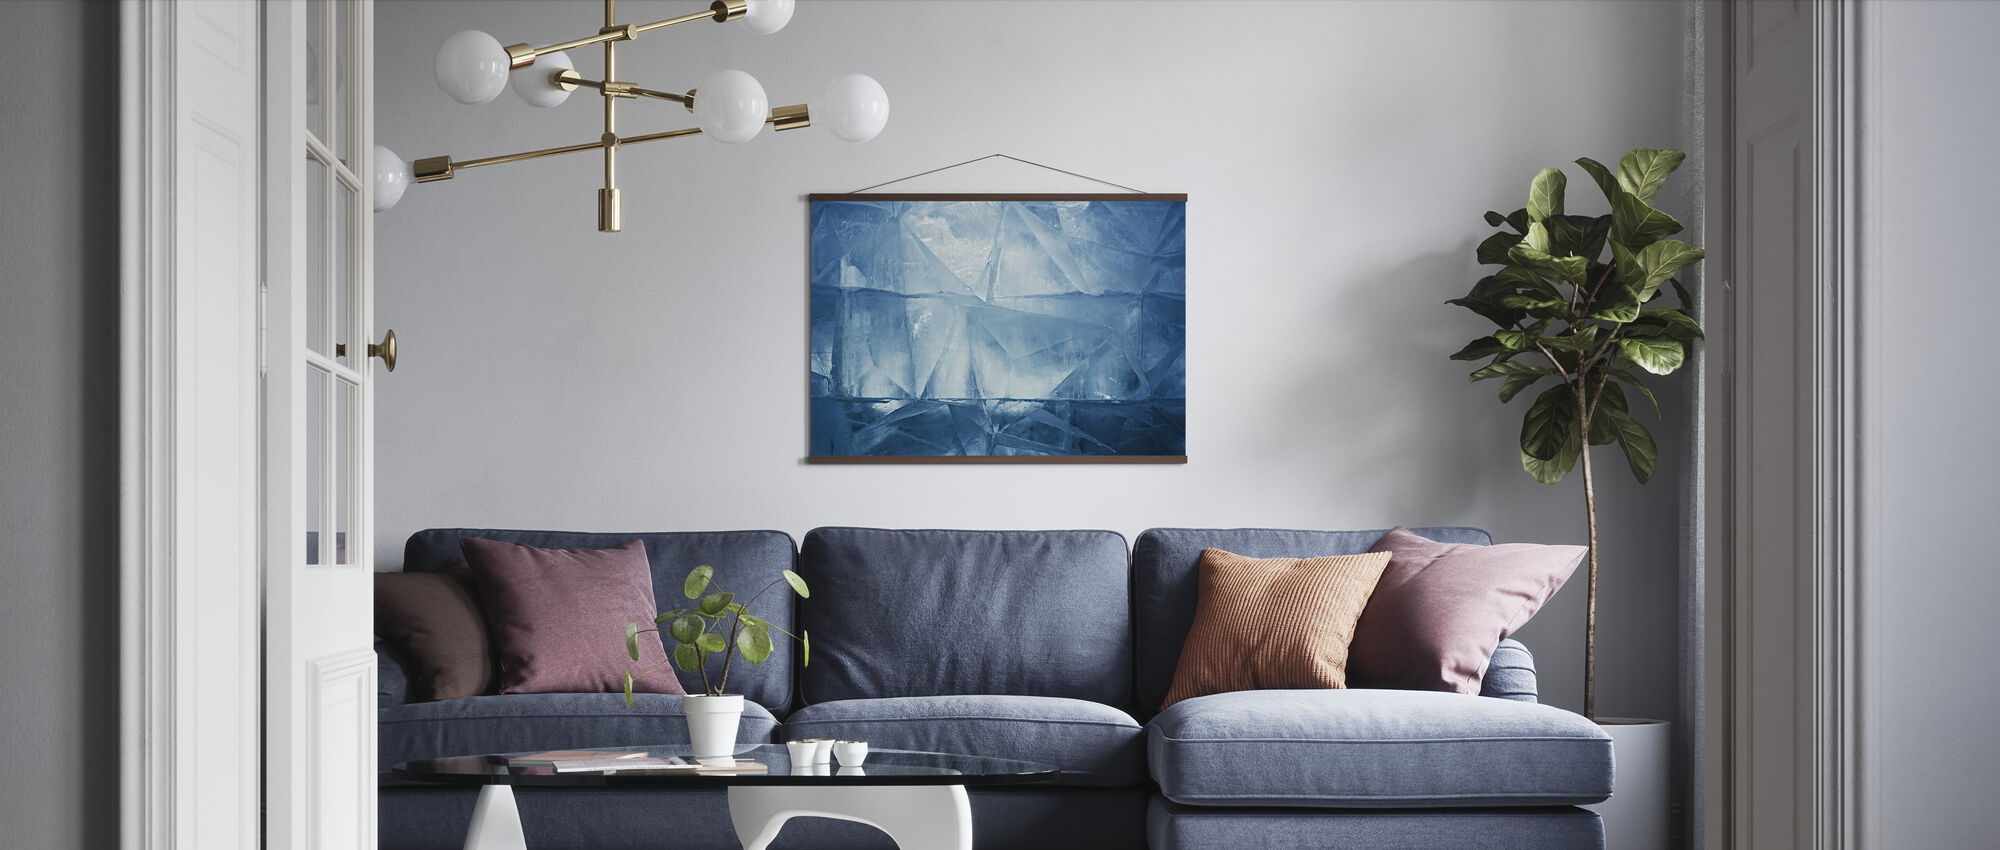 Blue Ice - Poster - Living Room